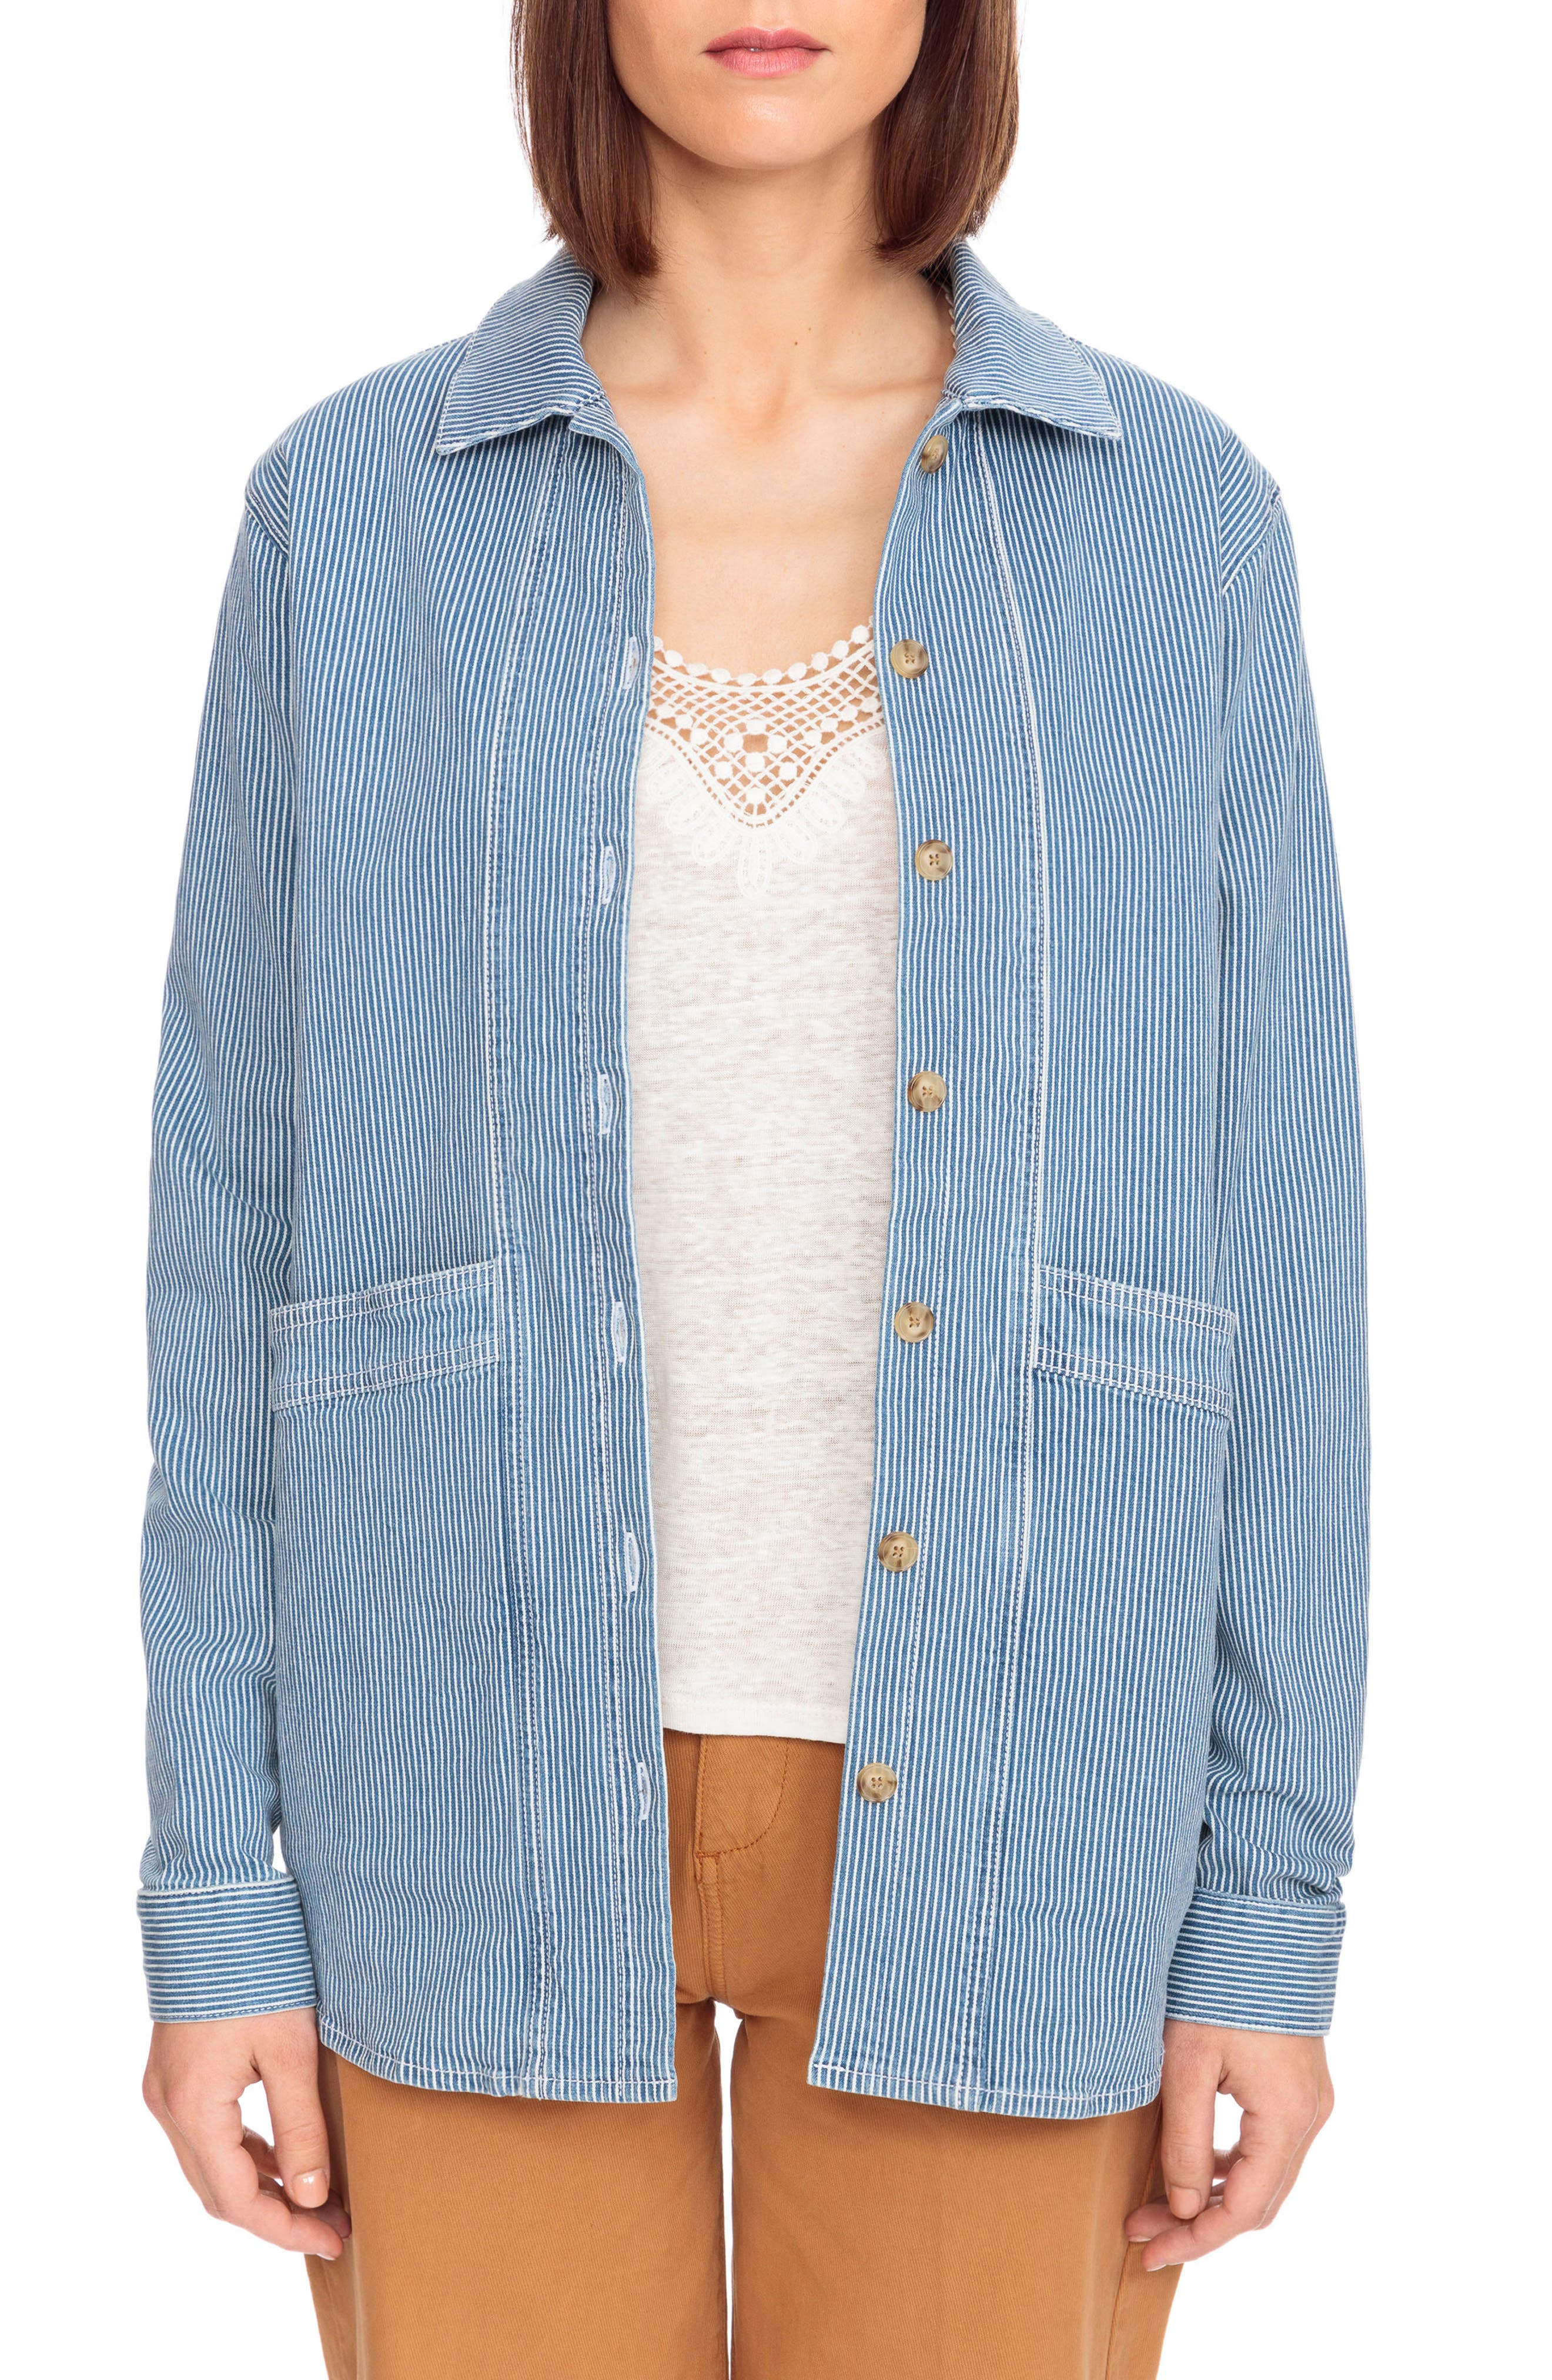 Will Stripe Shirt Jacket,                         Main,                         color, Off White And Blue Stripes